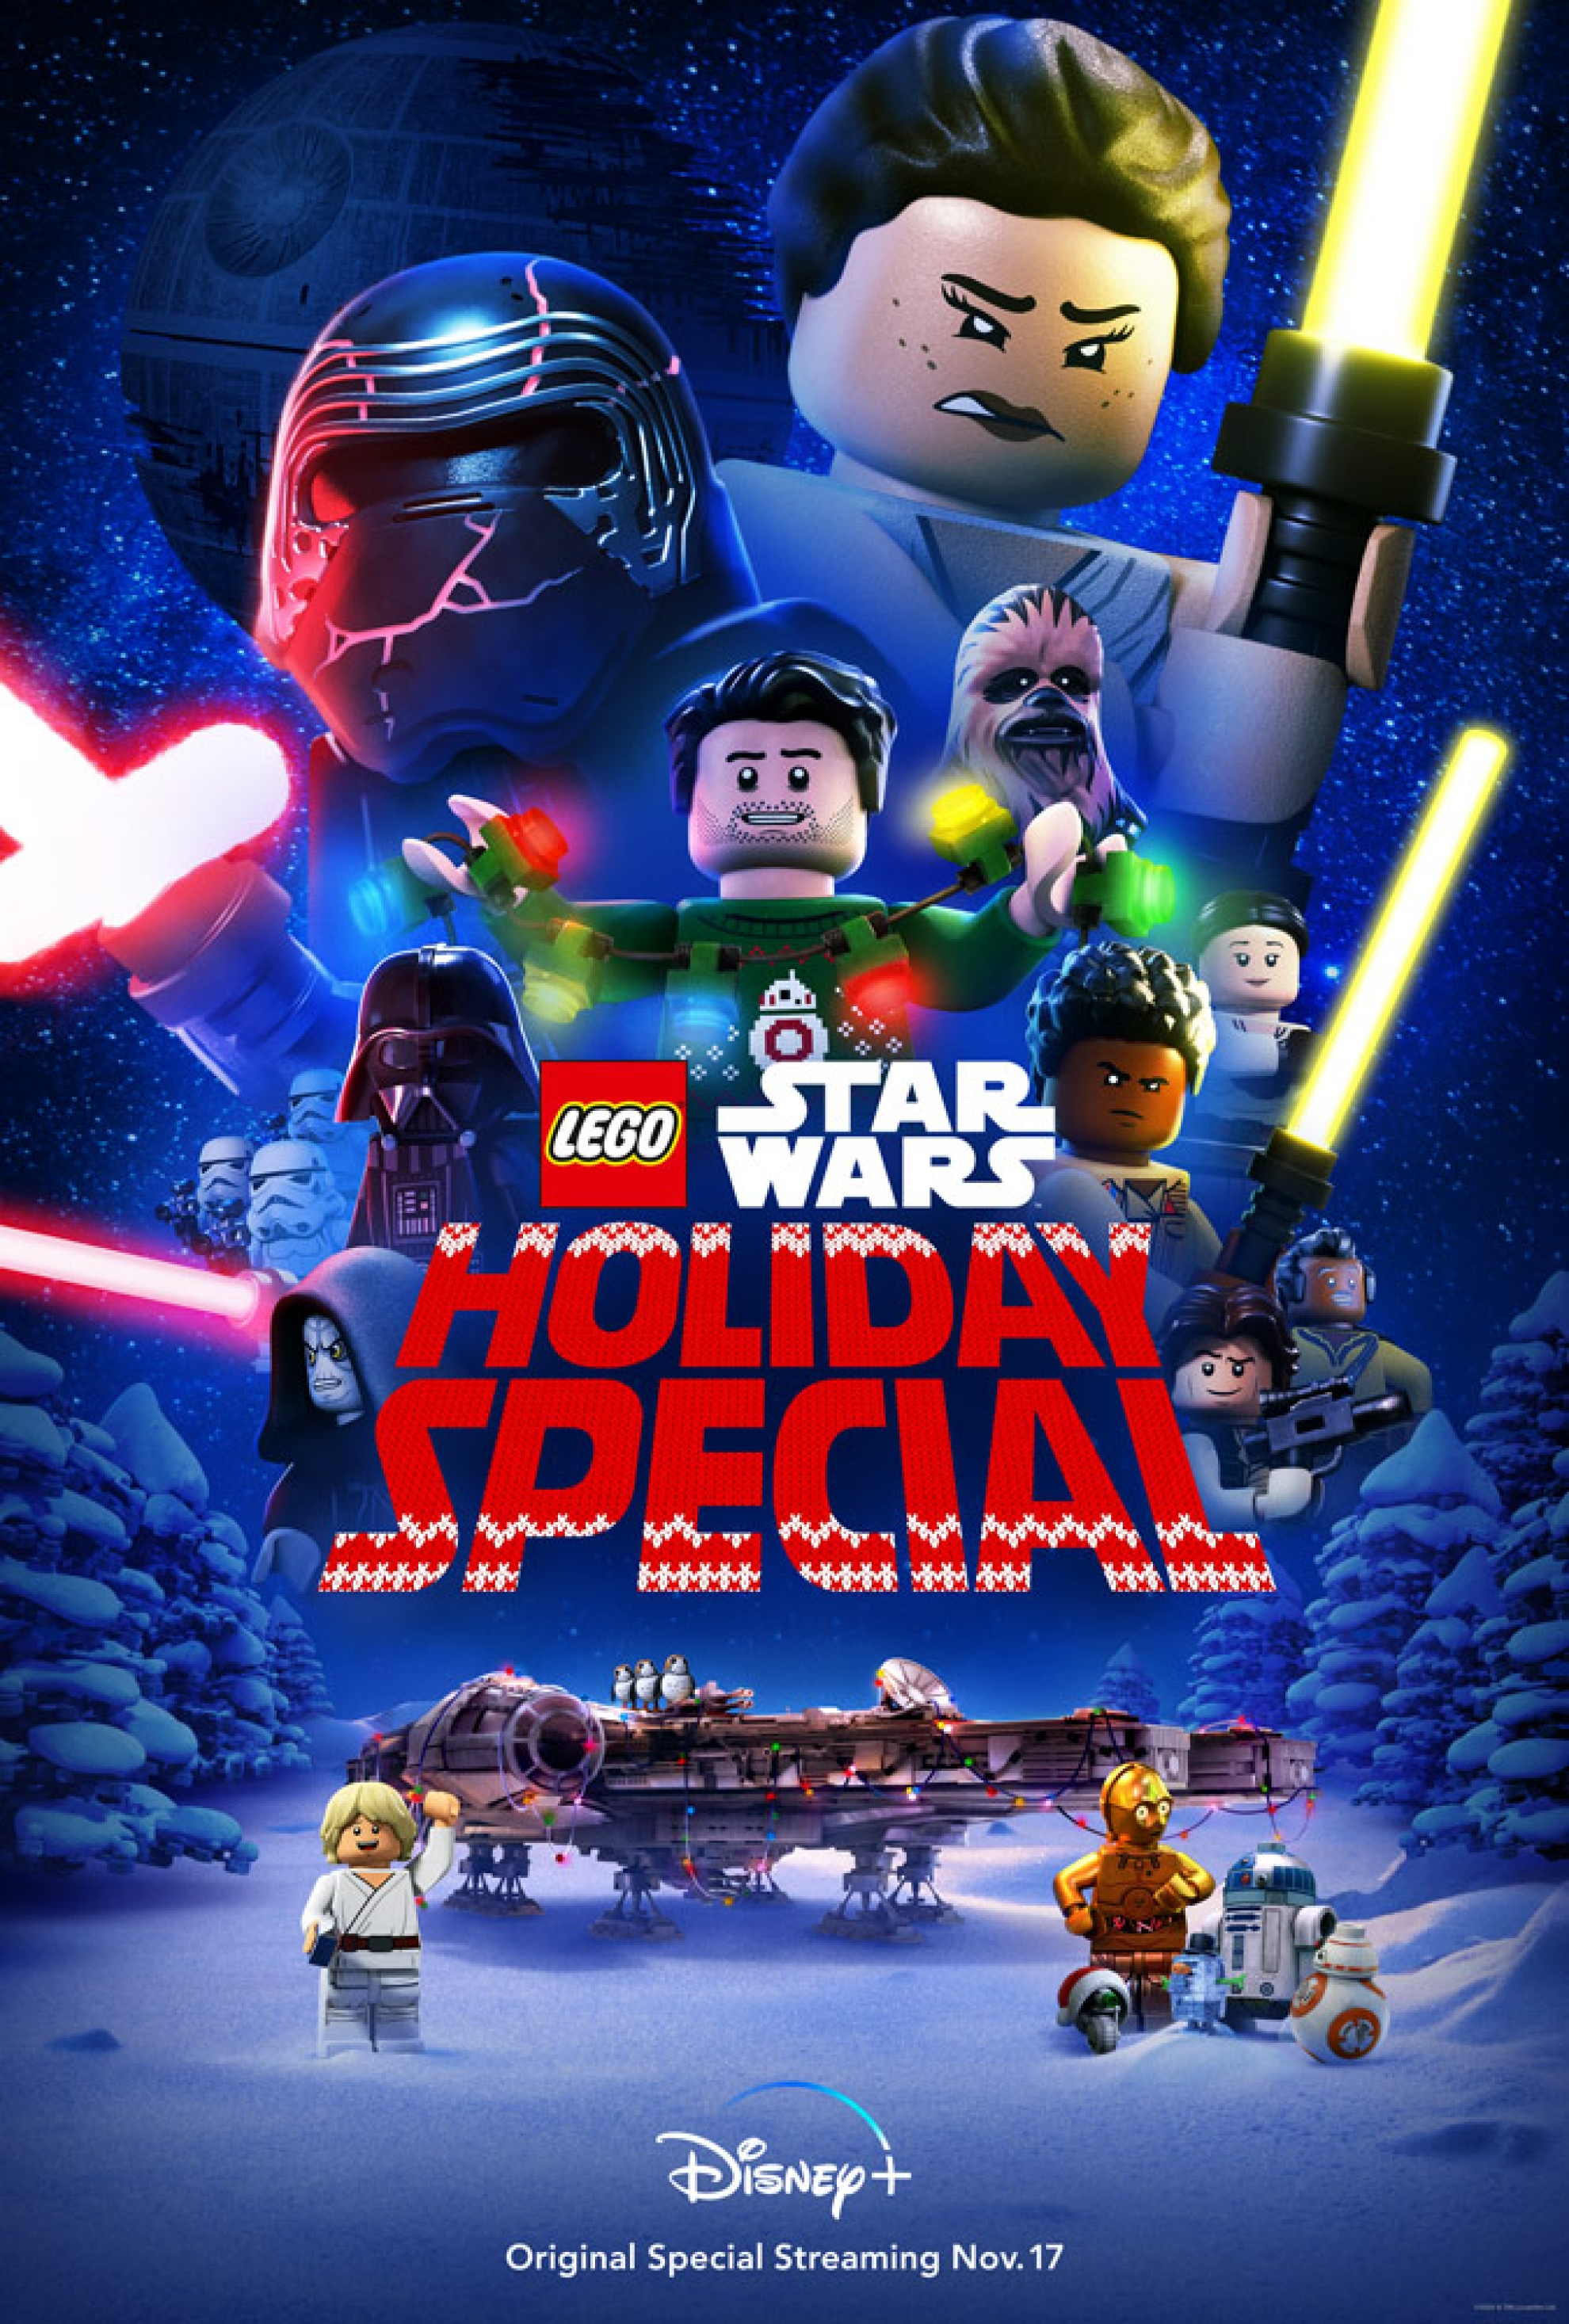 The Lego Star Wars Holiday Special Poster 73rg8487